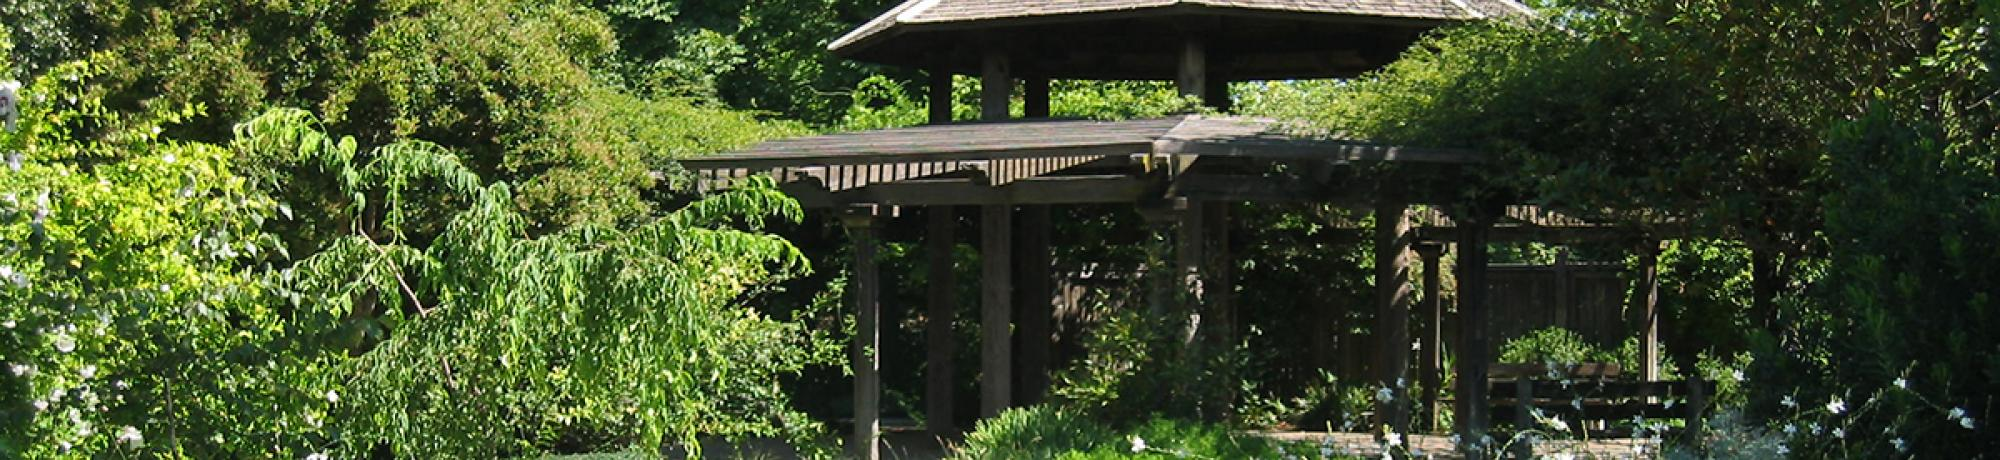 Shields Grove Gazebo